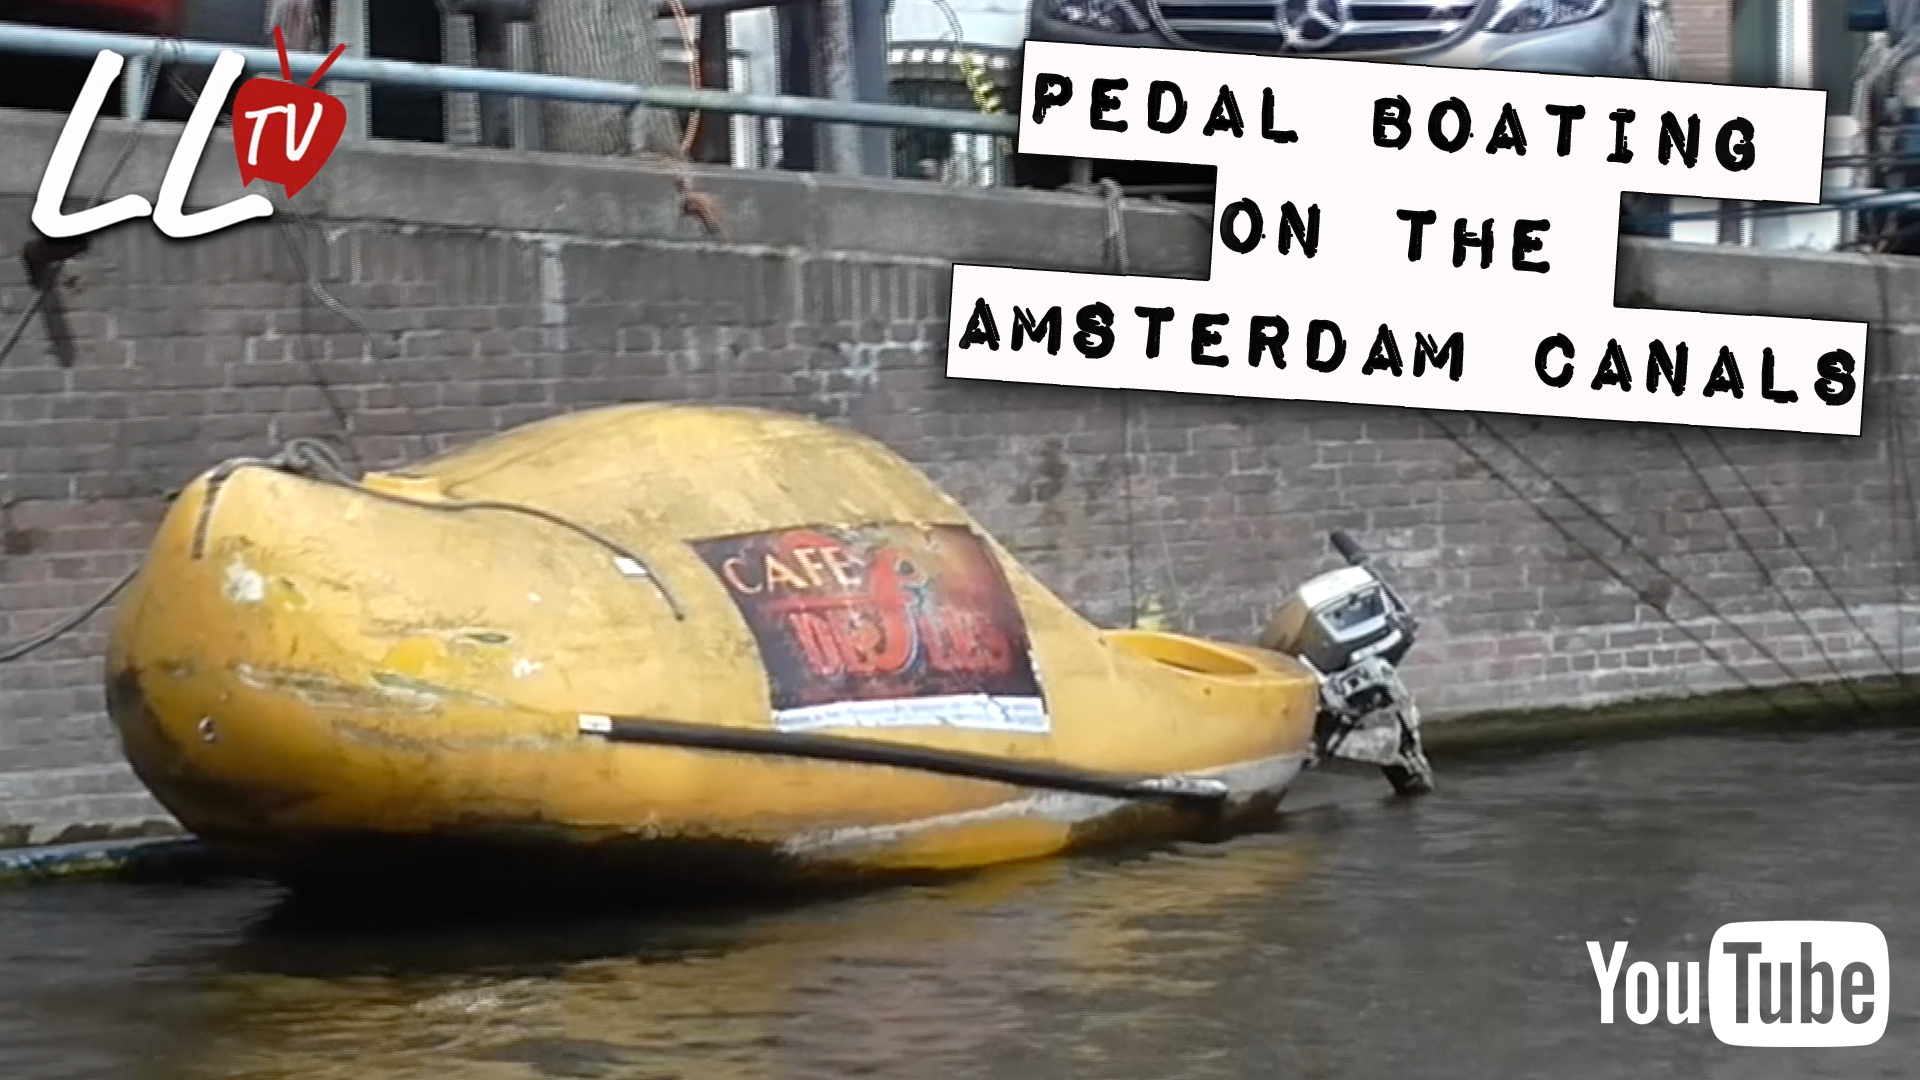 Pedal Boating on the Amsterdam Canals